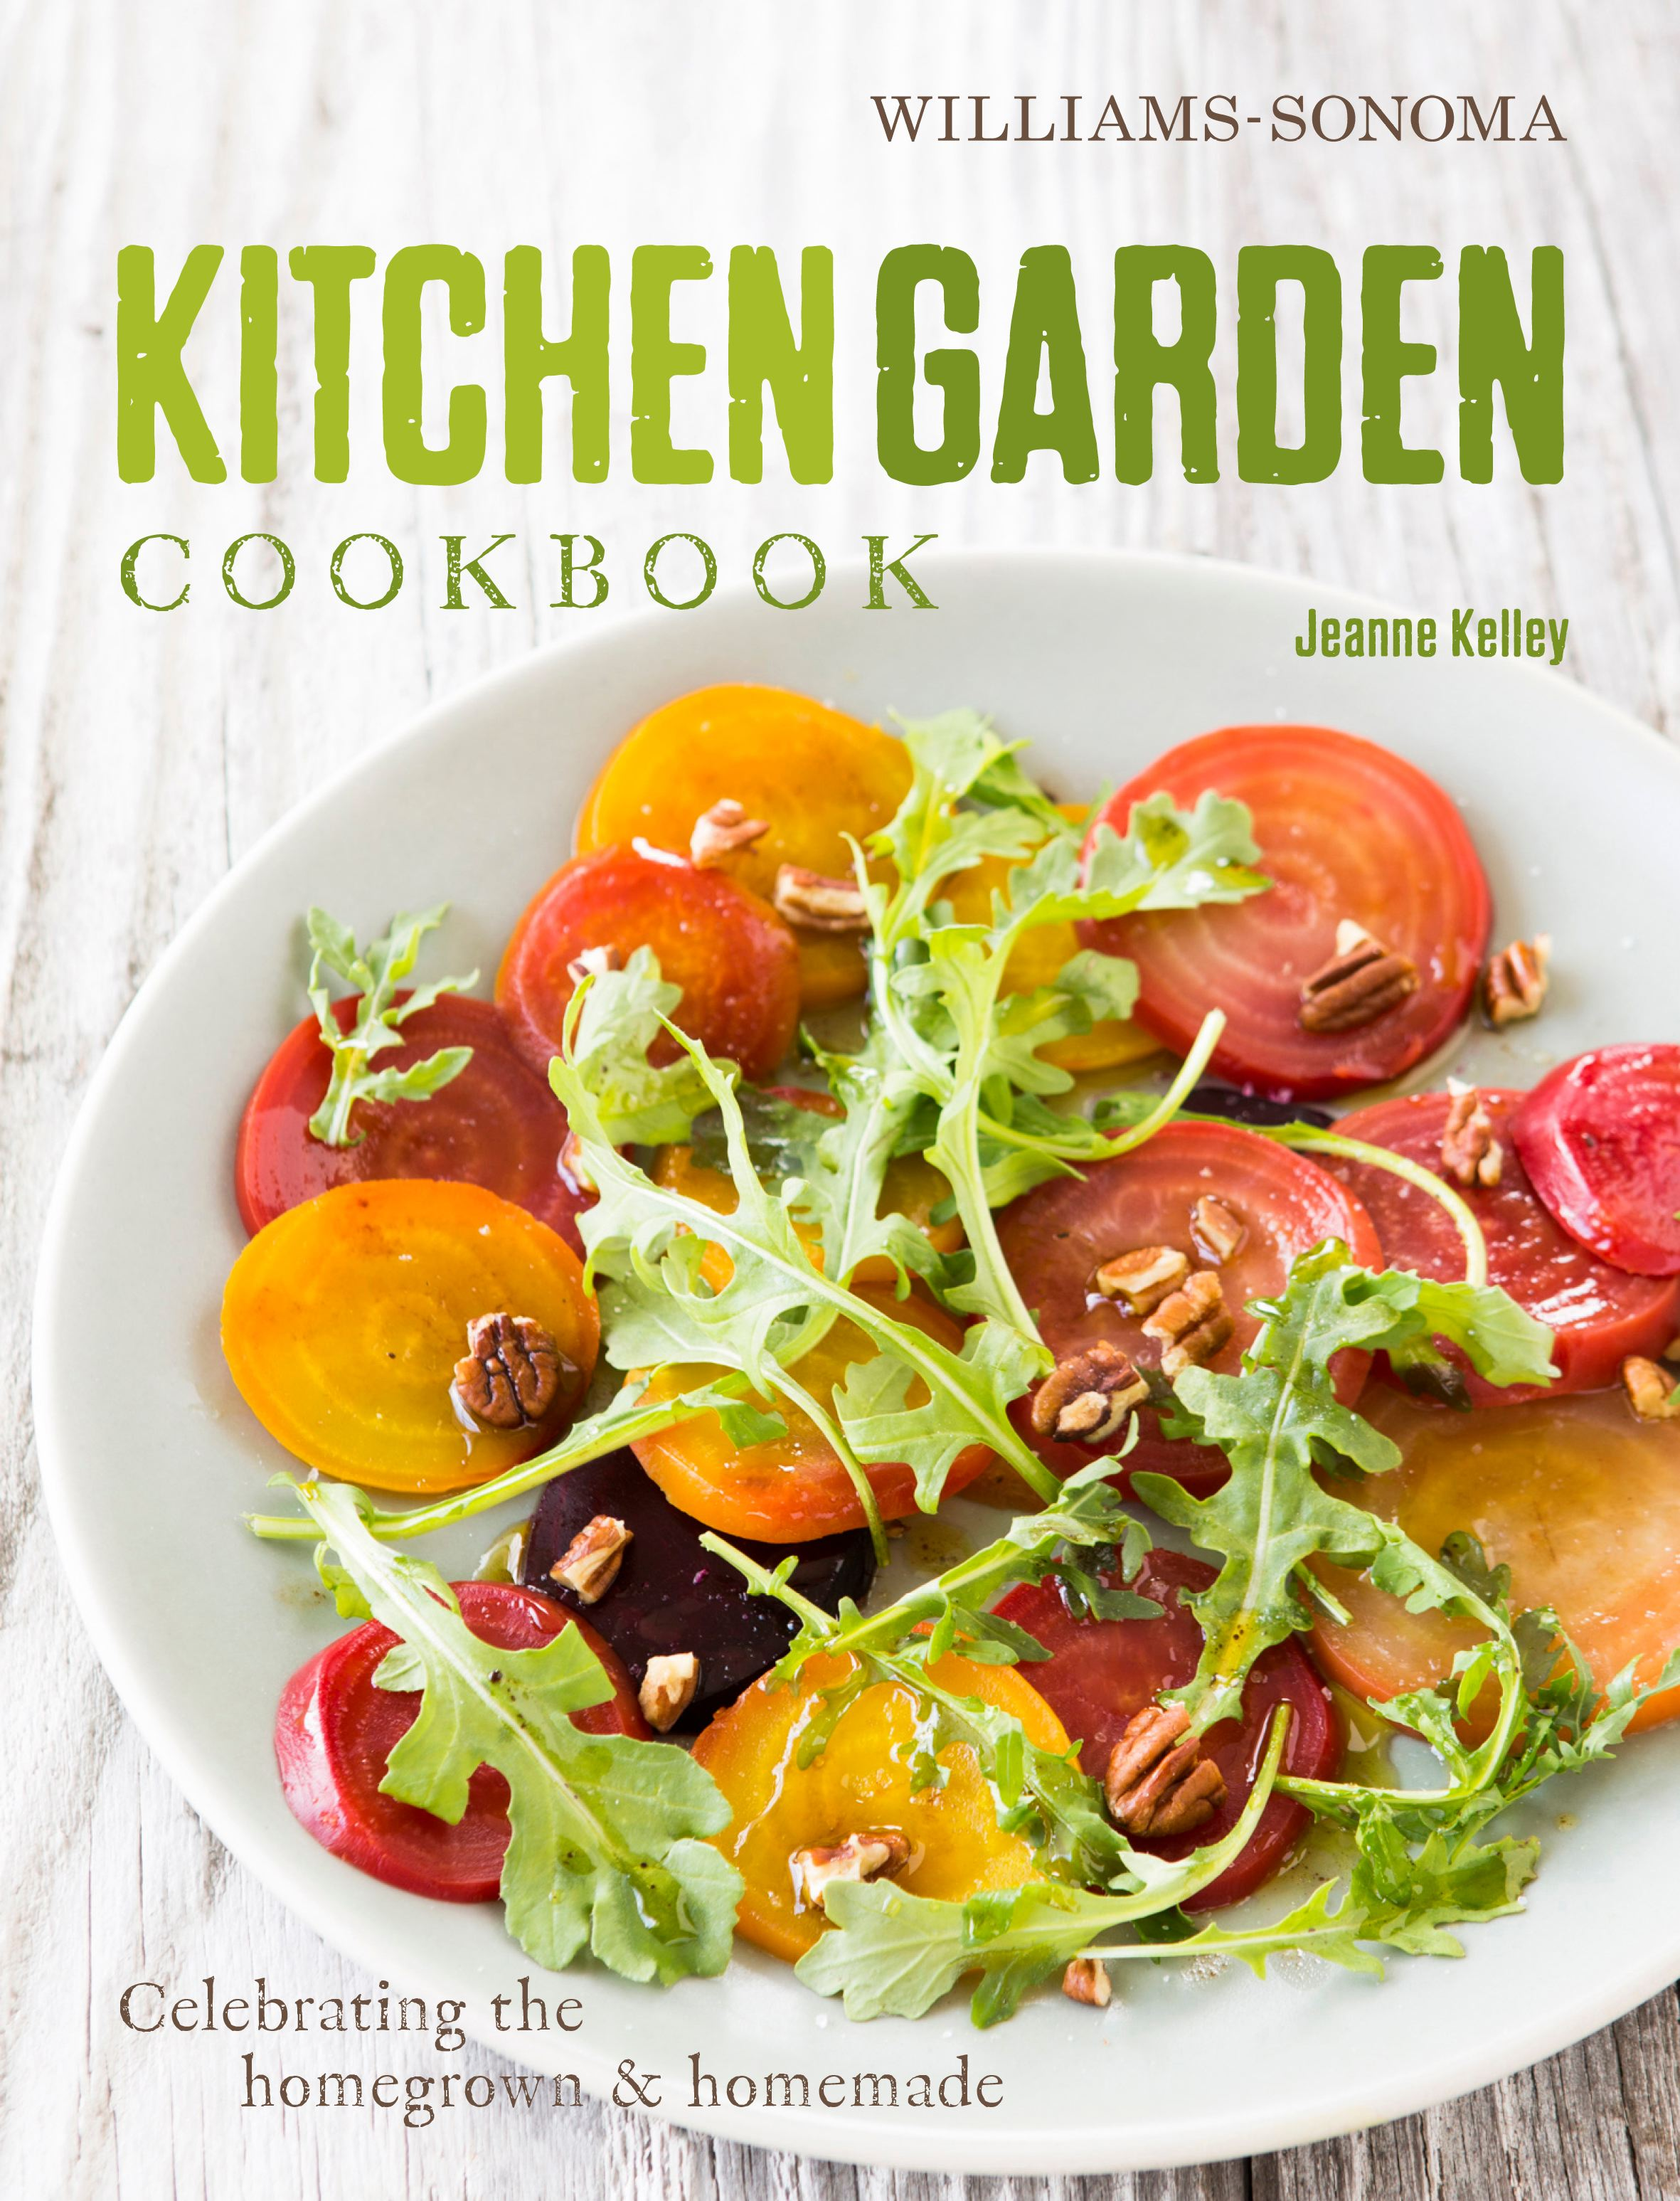 Kitchen garden cookbook 9781616285012 hr